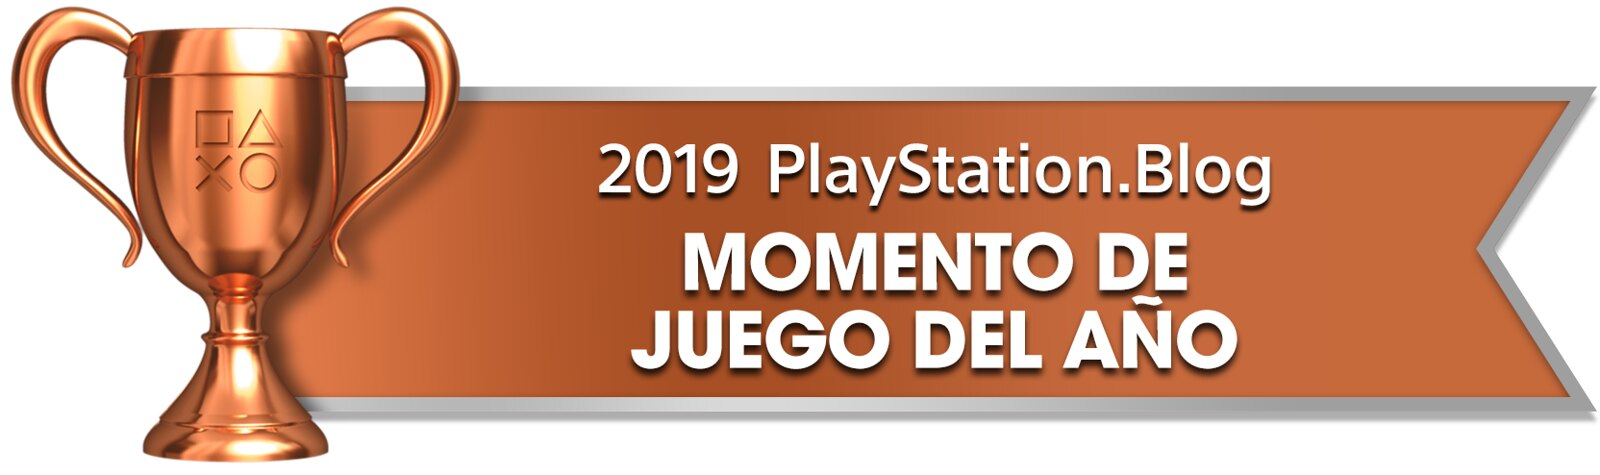 PS Blog Game of the Year 2019 - Gaming Moment of the Year - 4 - Bronze